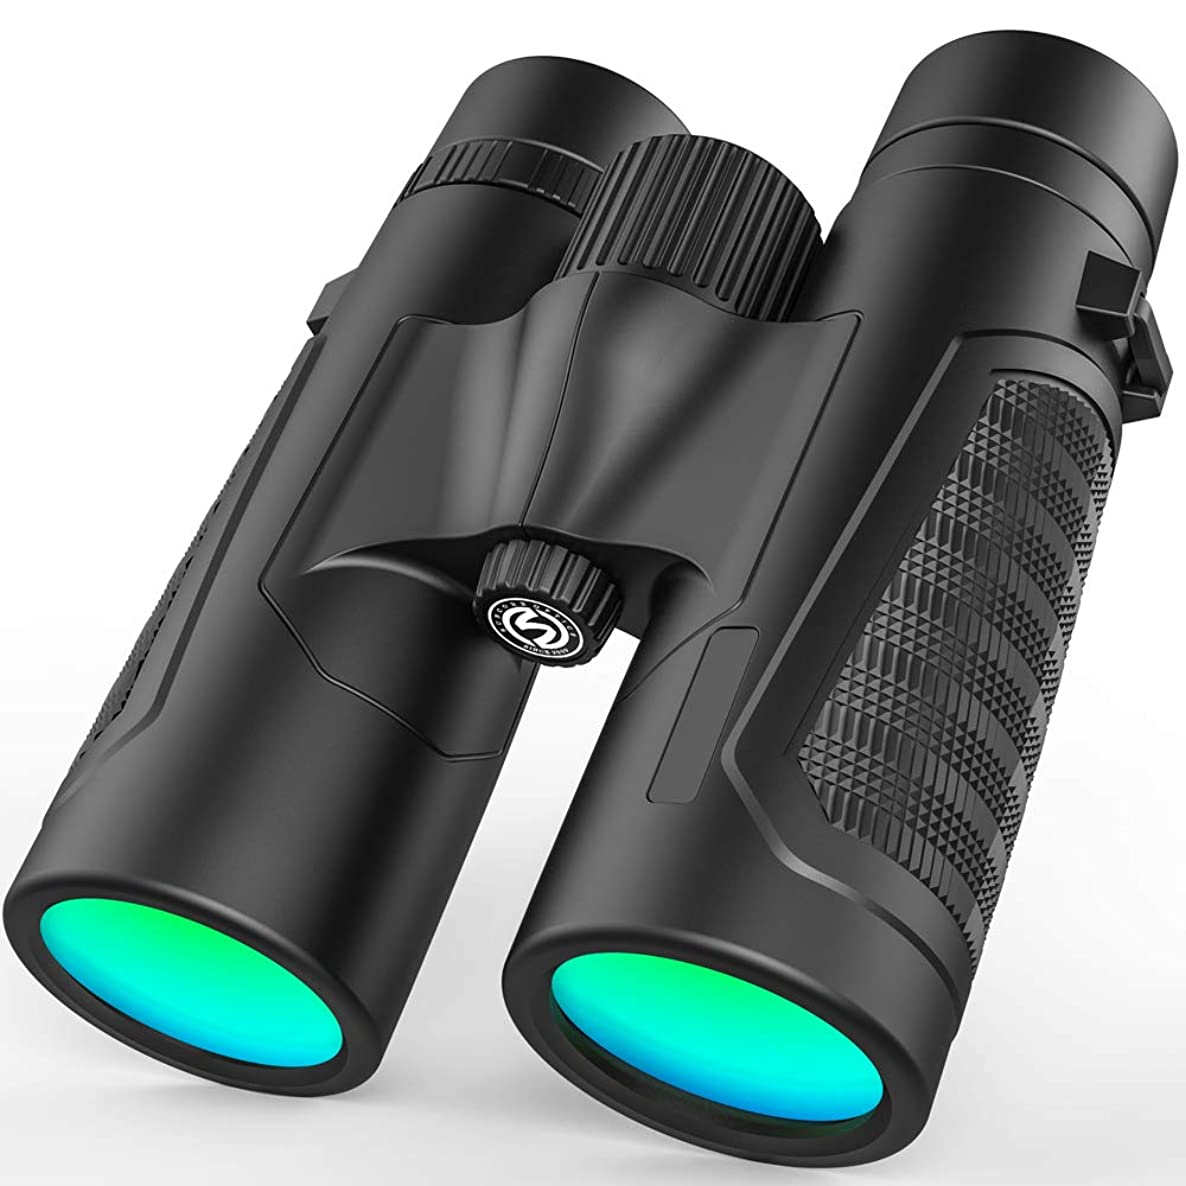 Compact Binoculars for Adults,12x42 Binoculars with Low Light Night Vision - Large Eyepiece High Power Waterproof Binocular Easy Focus for Bird Watching,Hunting,Traveling and Sightseeing